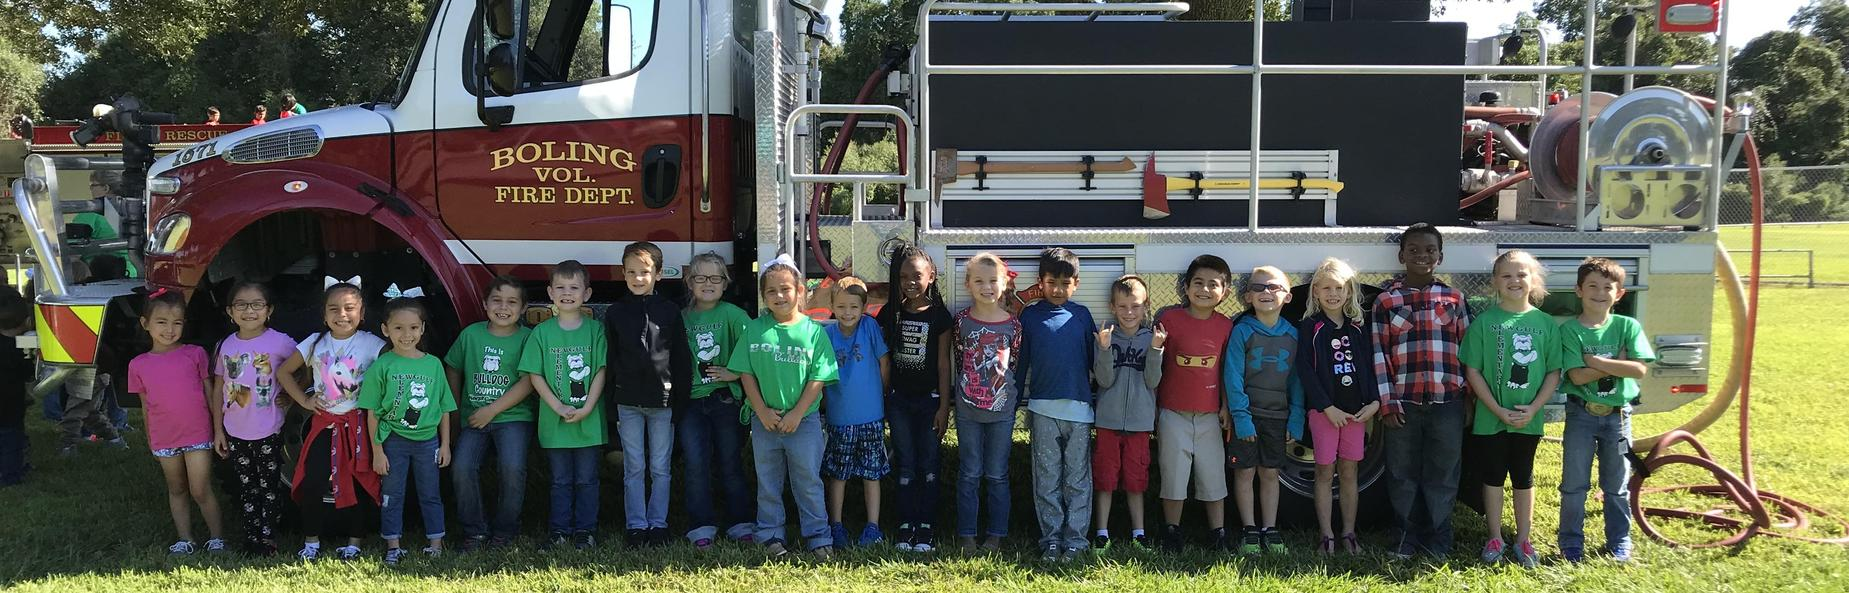 elementary school children next to fire truck